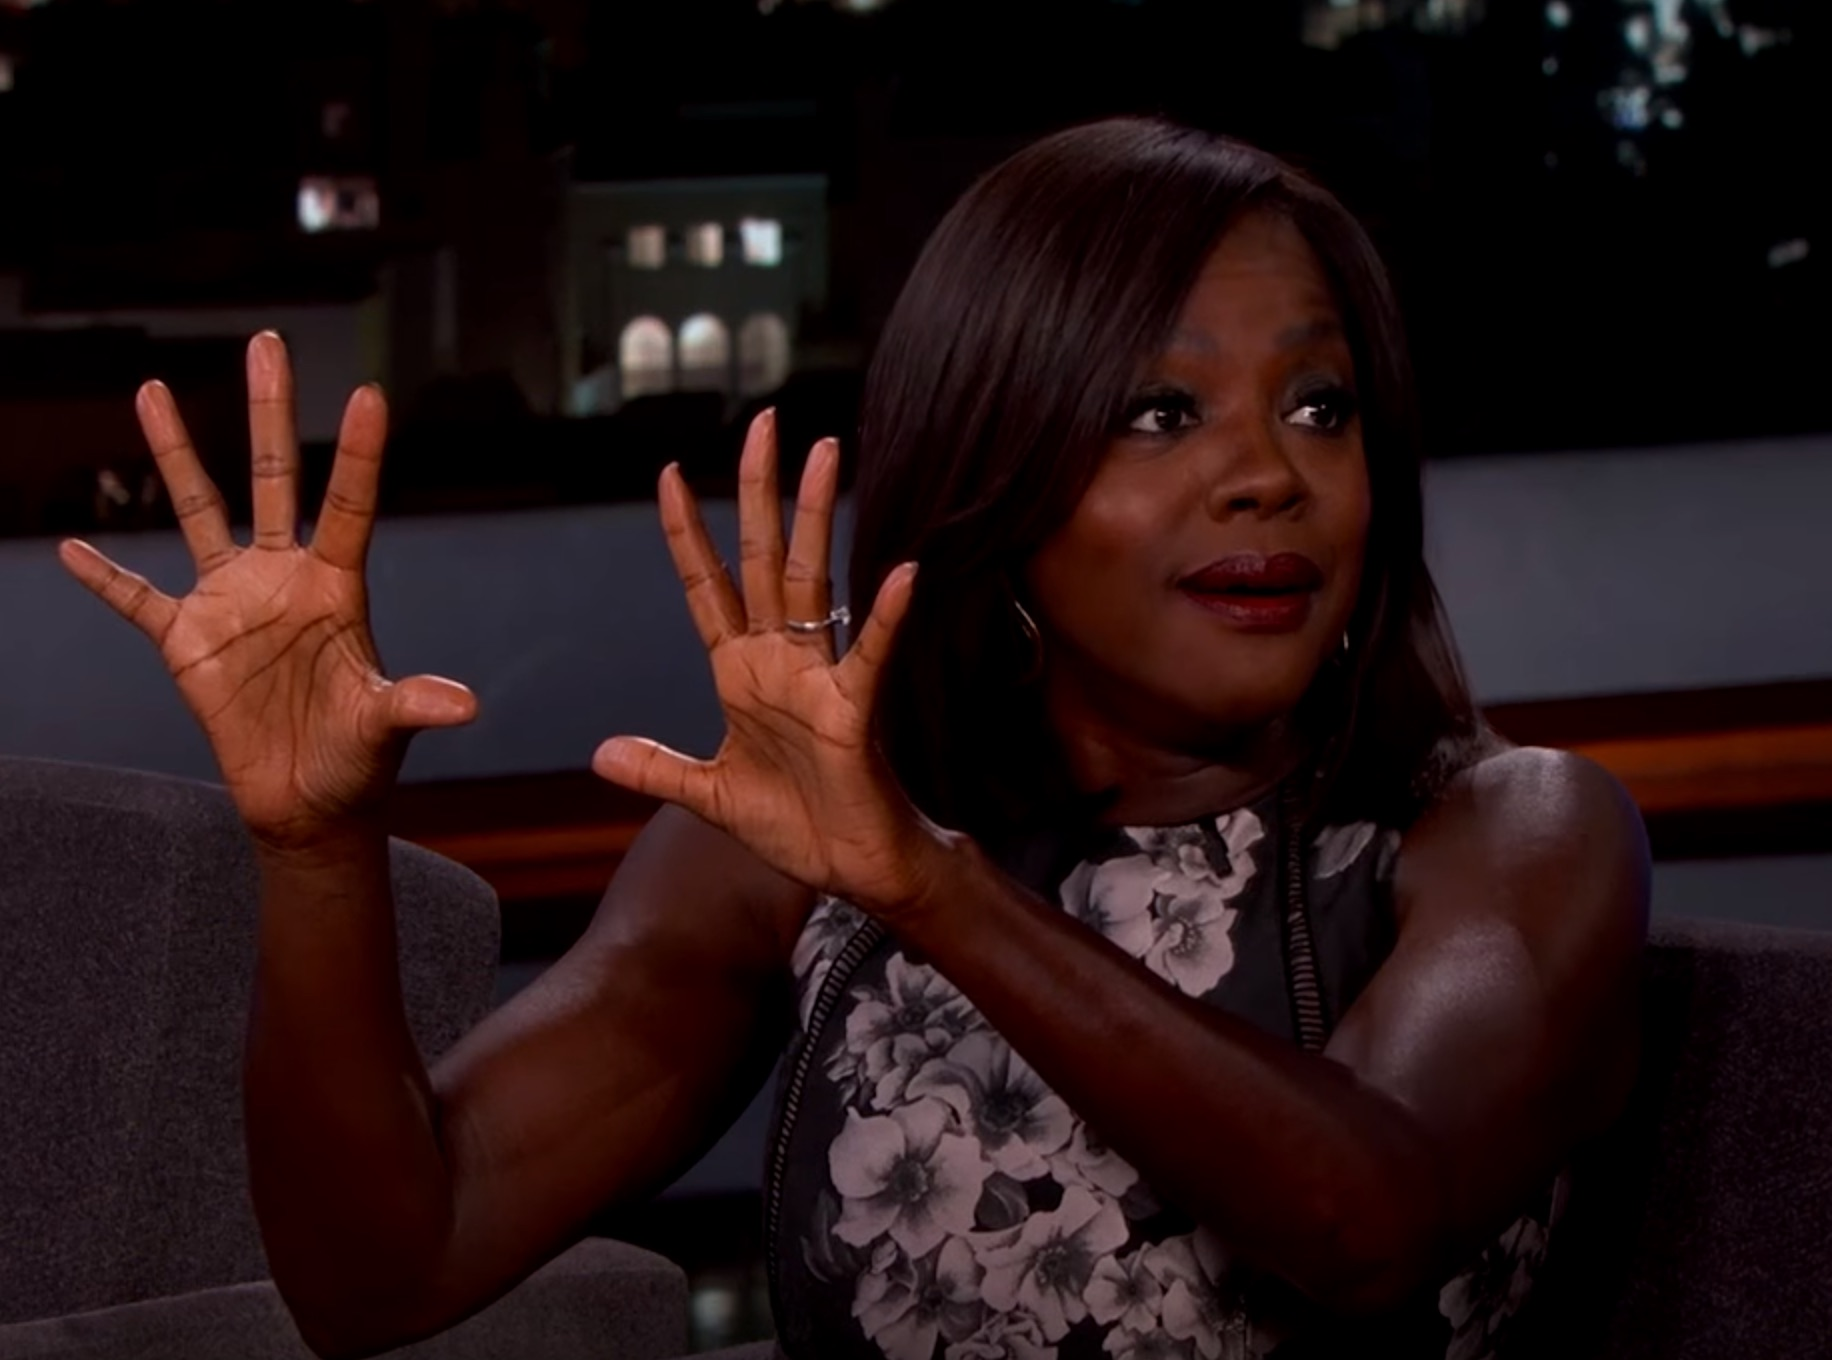 Viola Davis is feeling better after that awkward injury during a sex scene